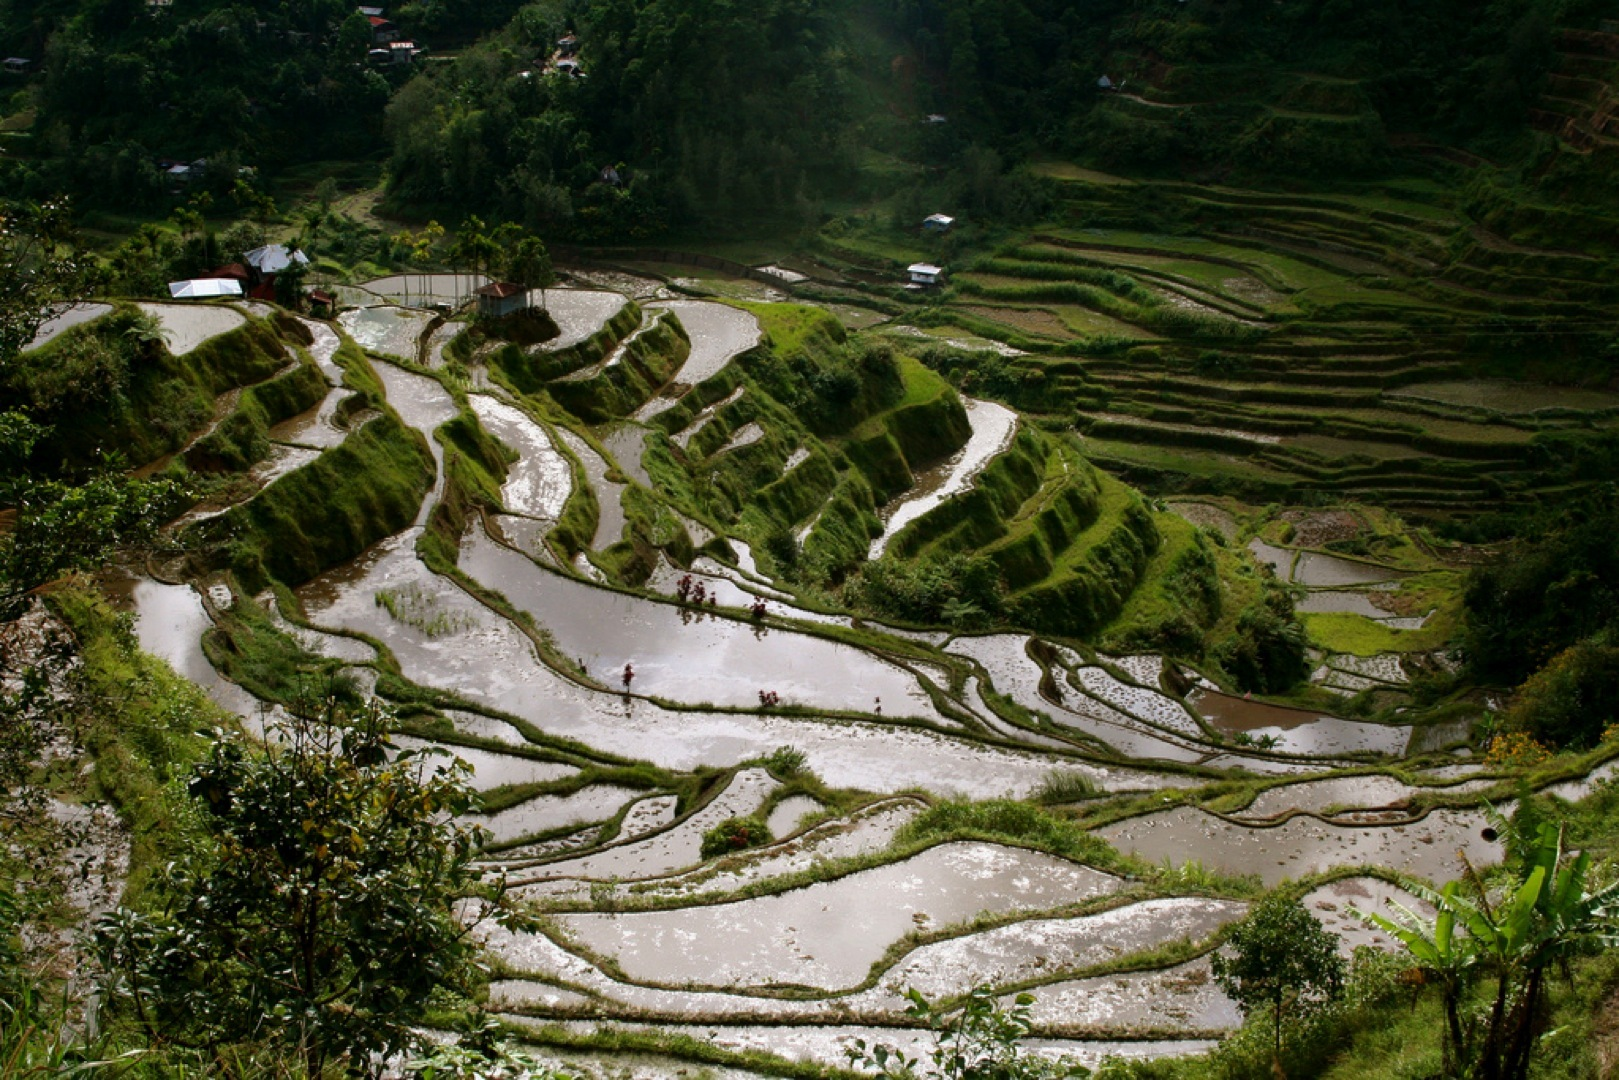 Banaue Rice Terraces by jonrawlinson on flickr